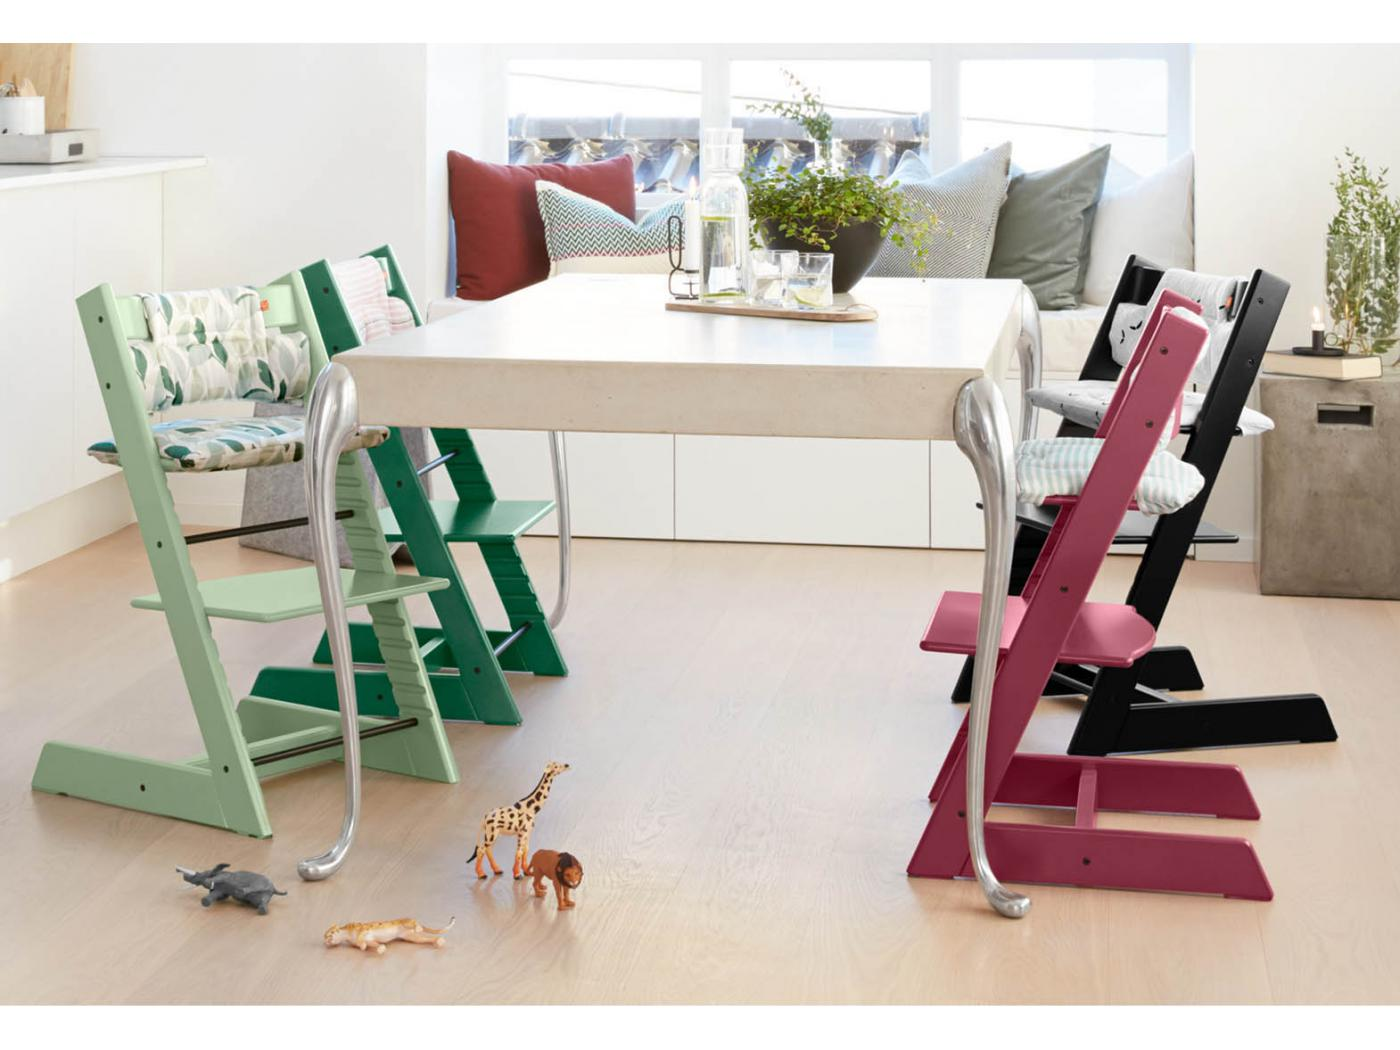 stokke chaise haute tripp trapp vert mousse personnalisable. Black Bedroom Furniture Sets. Home Design Ideas